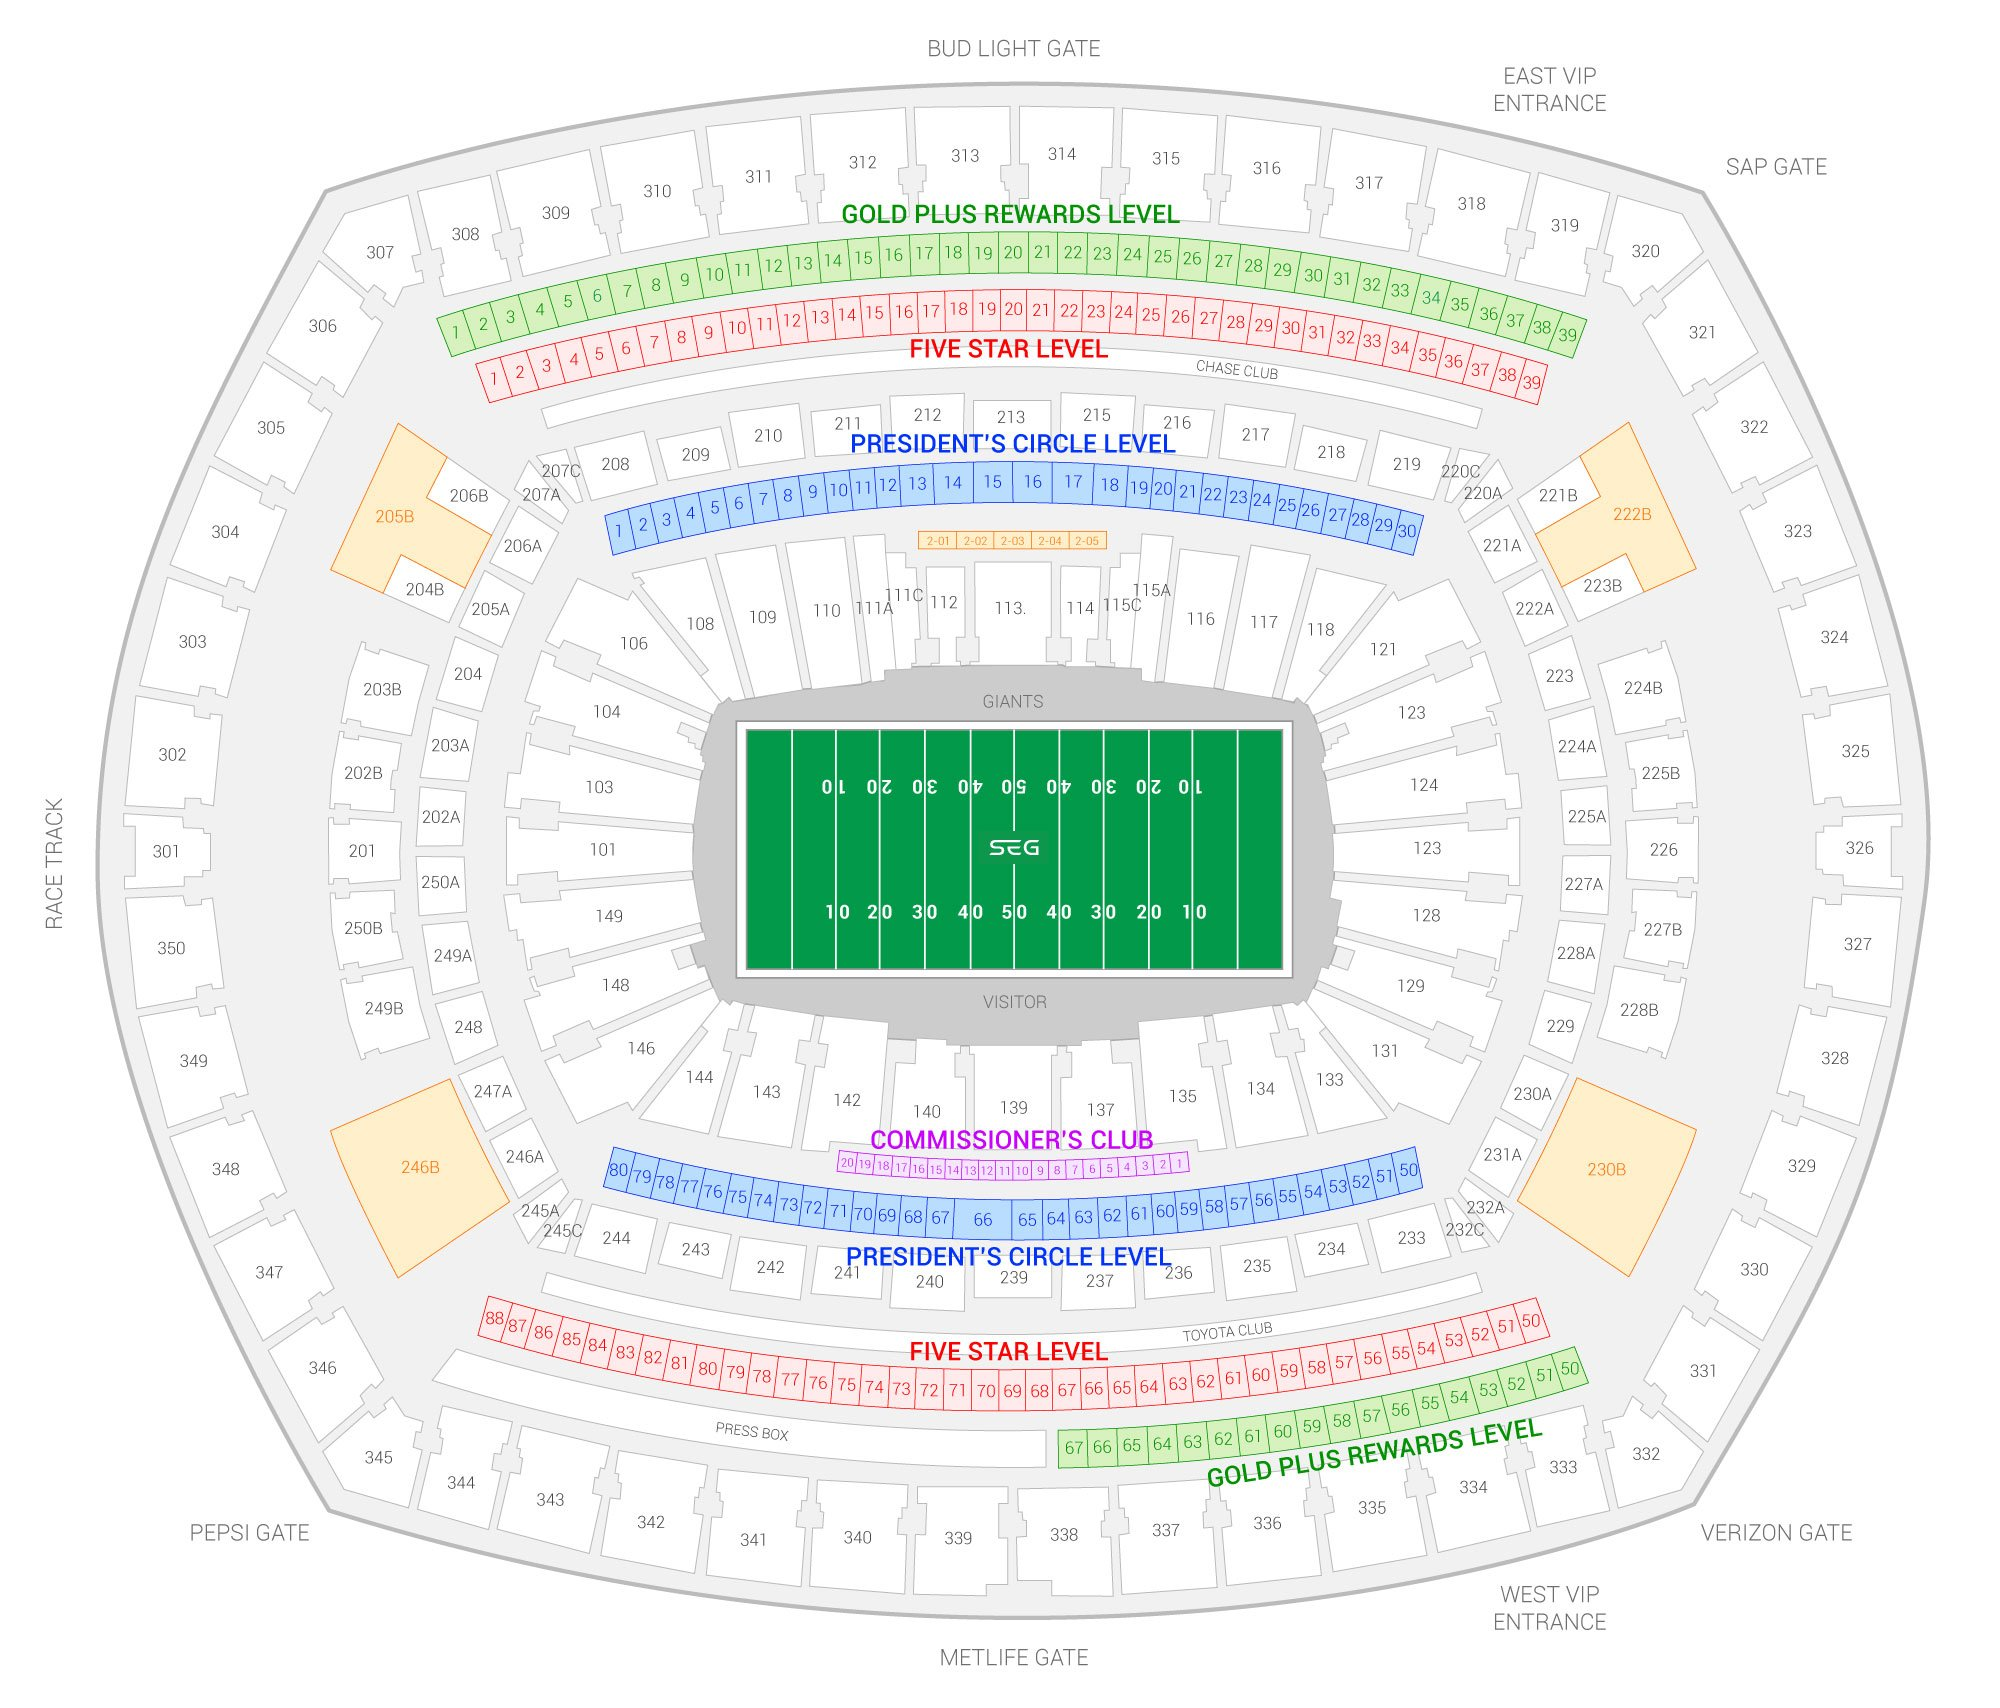 New York Giants Suite Rentals | MetLife Stadium Giants Seating Map on giants arena seating, giants jets stadium map, giants stadium seating numbers, giants stadium seating plan, giants stadium seating chart, giants stadium seating view, giants tailgating, giants stadium seating vip seats, giants parking map, giants merchandise, giants spring training tickets, giants at stadium view from my seat, giants schedule,